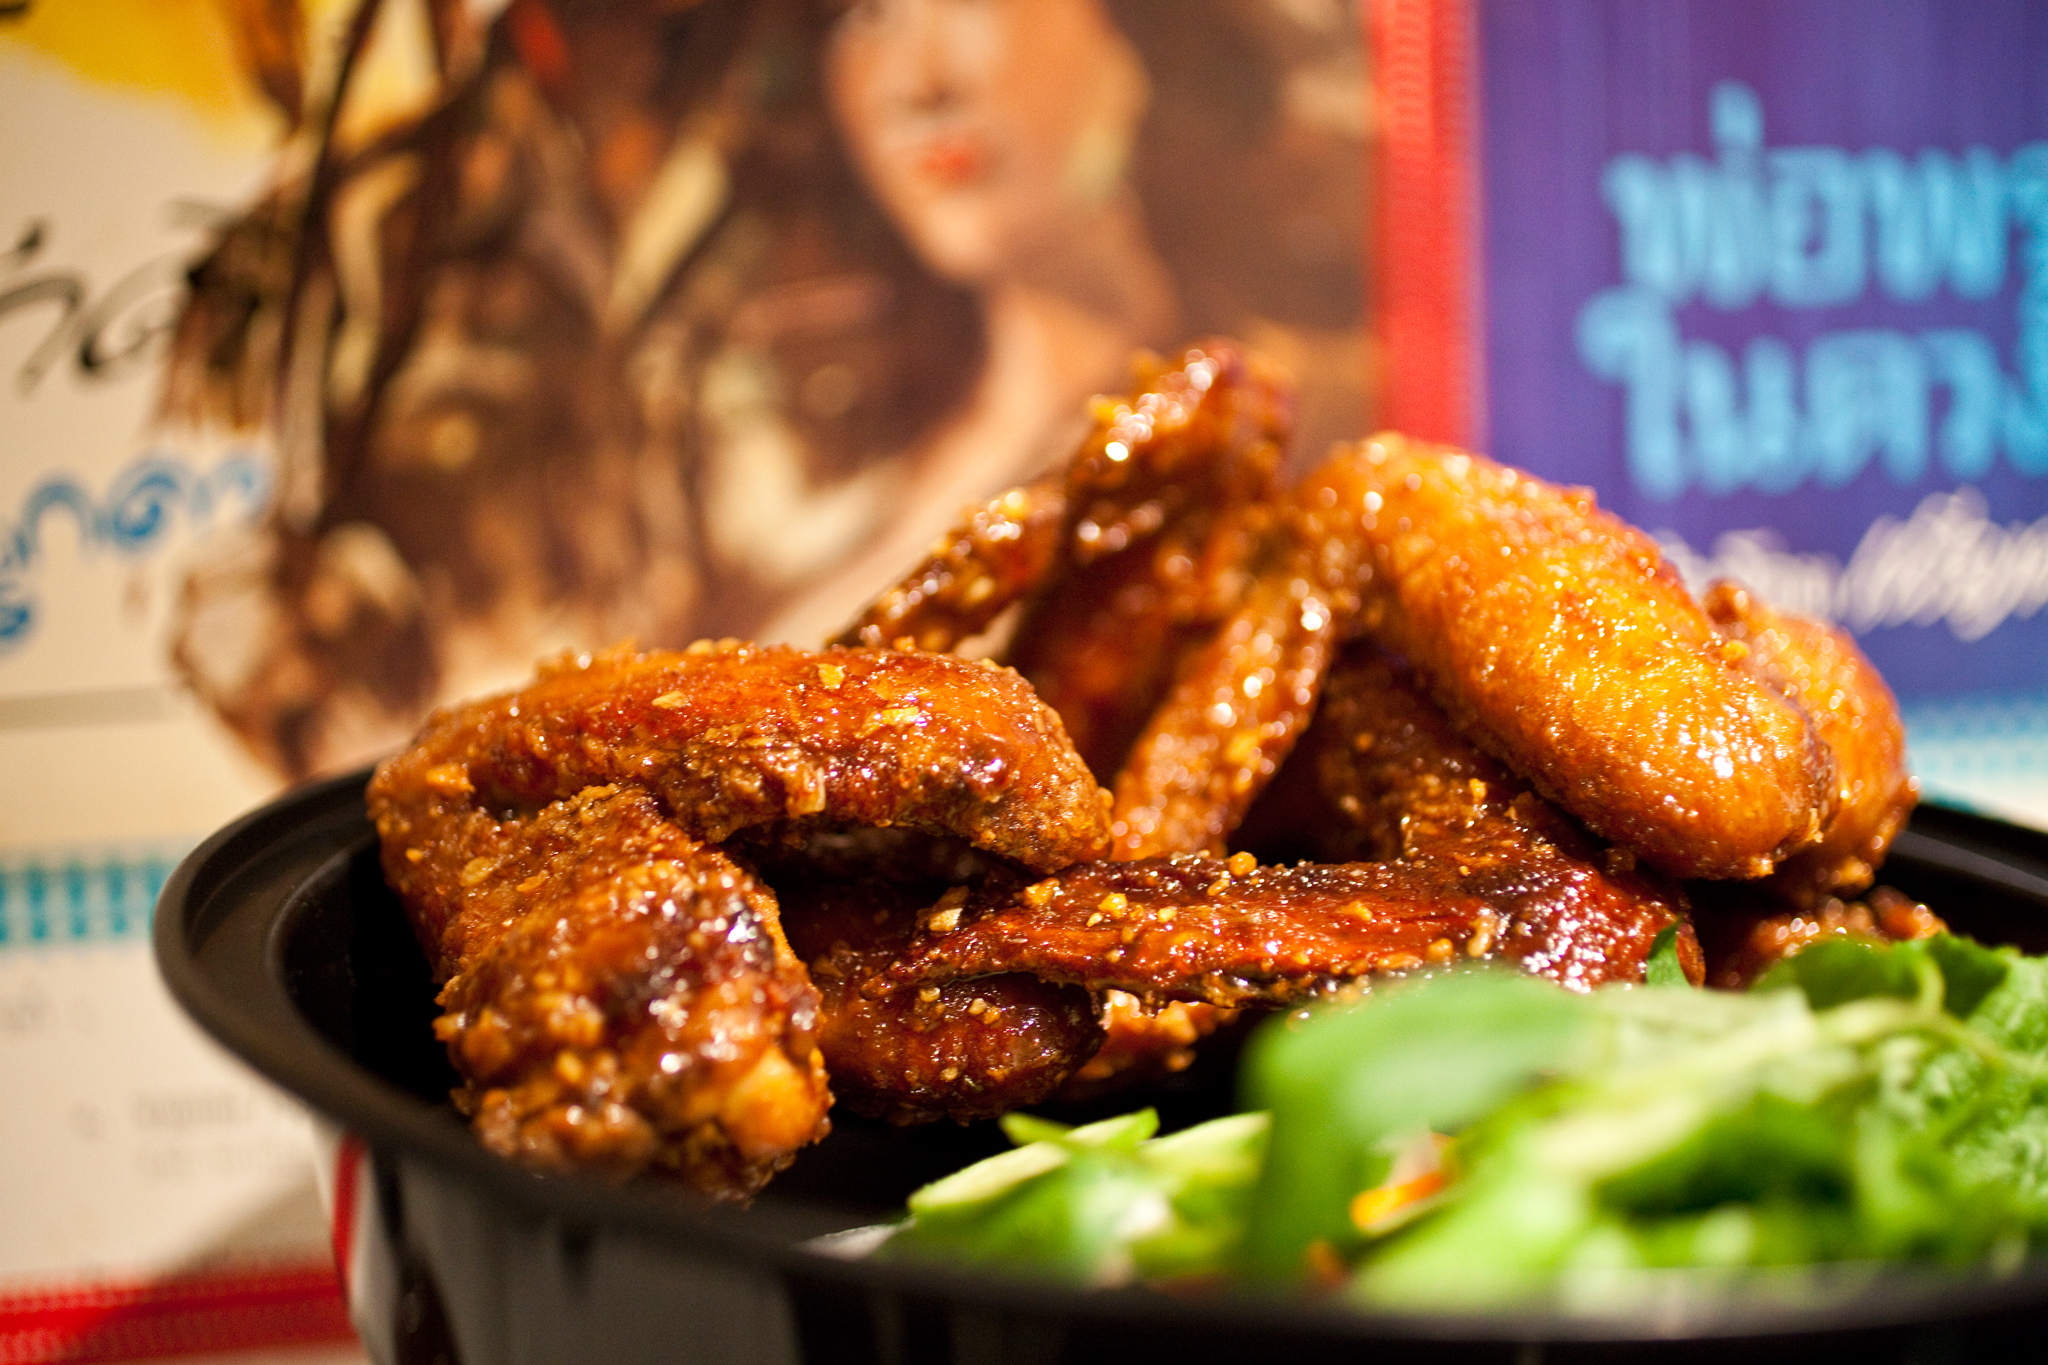 Ike's Wings at Pok Pok Wing